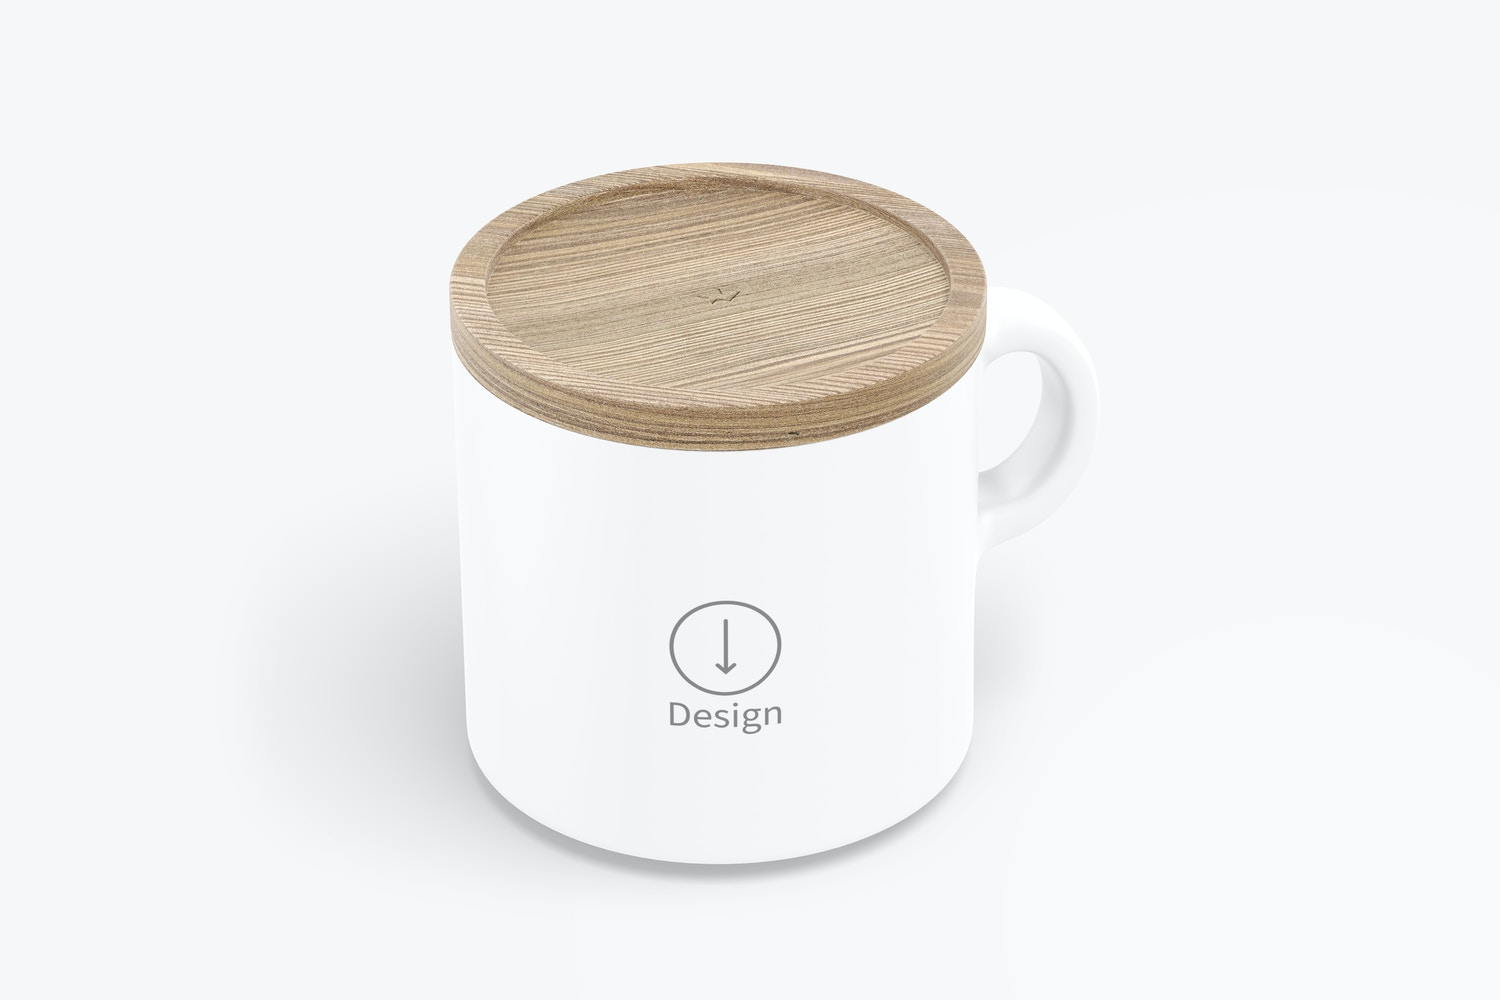 10 oz Ceramic Mugs with Bamboo Lid Mockup, Isometric Right View